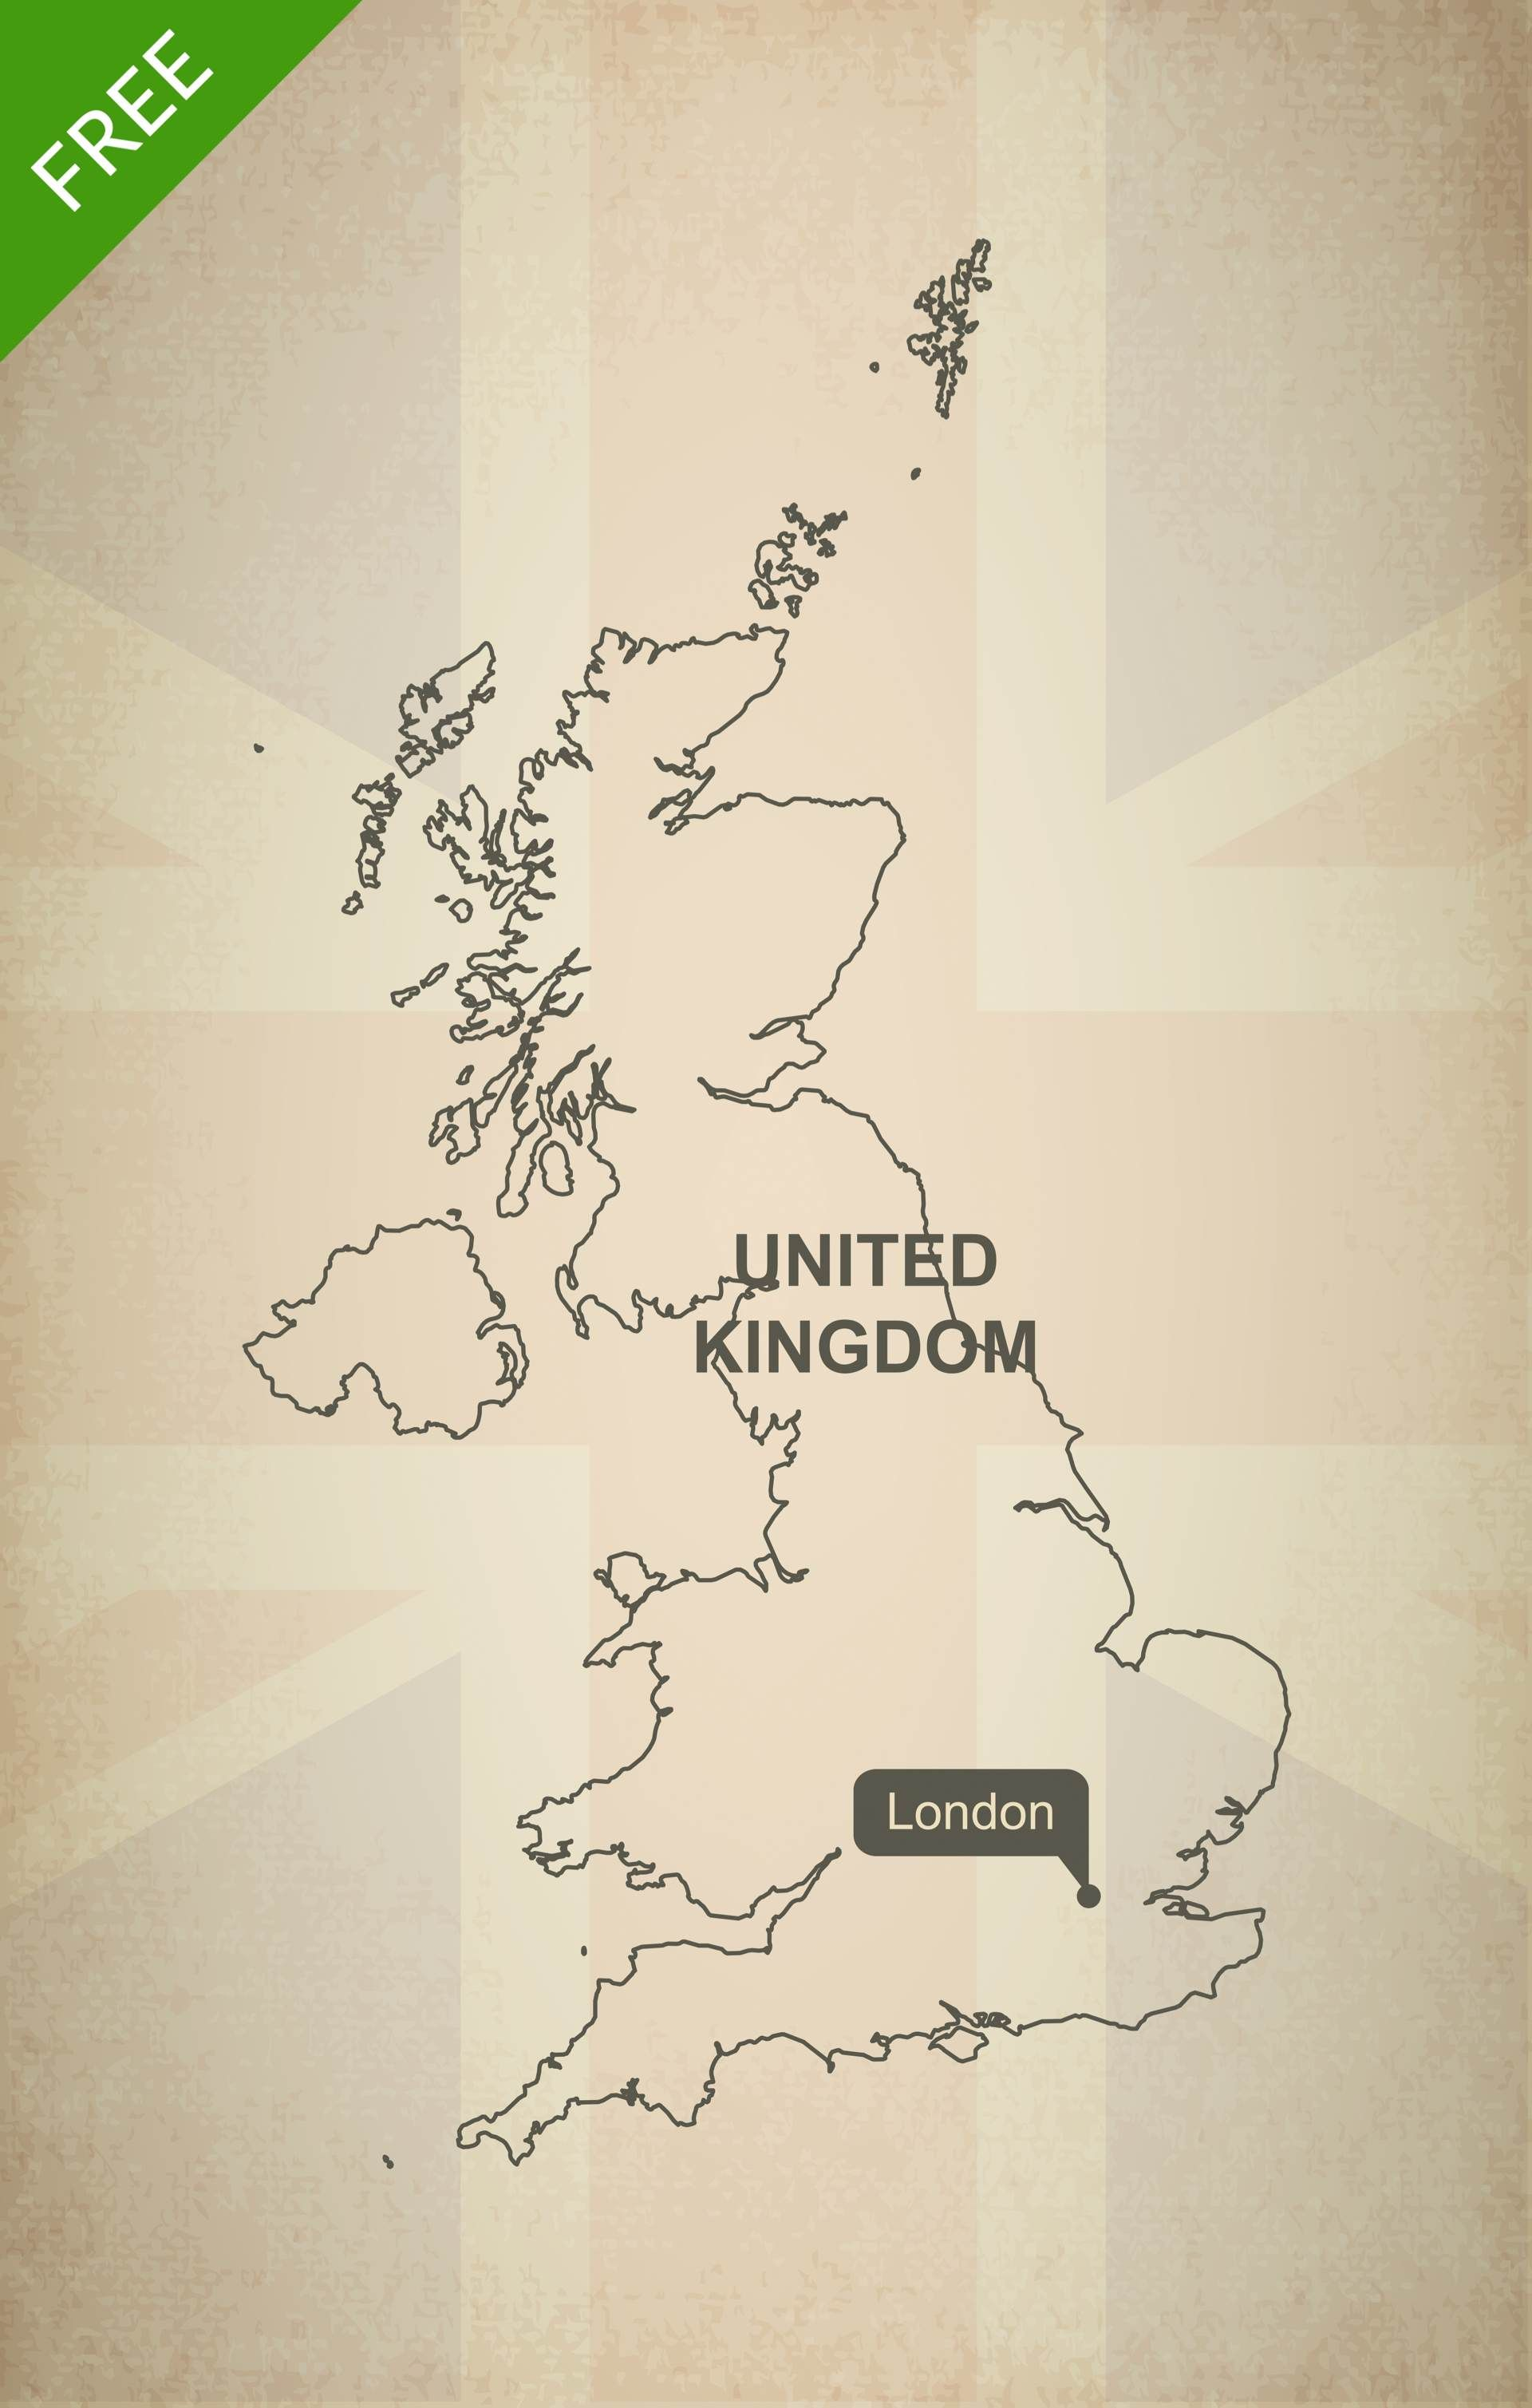 Free Vector Map Of United Kingdom Outline Vector Format Europe - United kingdom map hd pdf